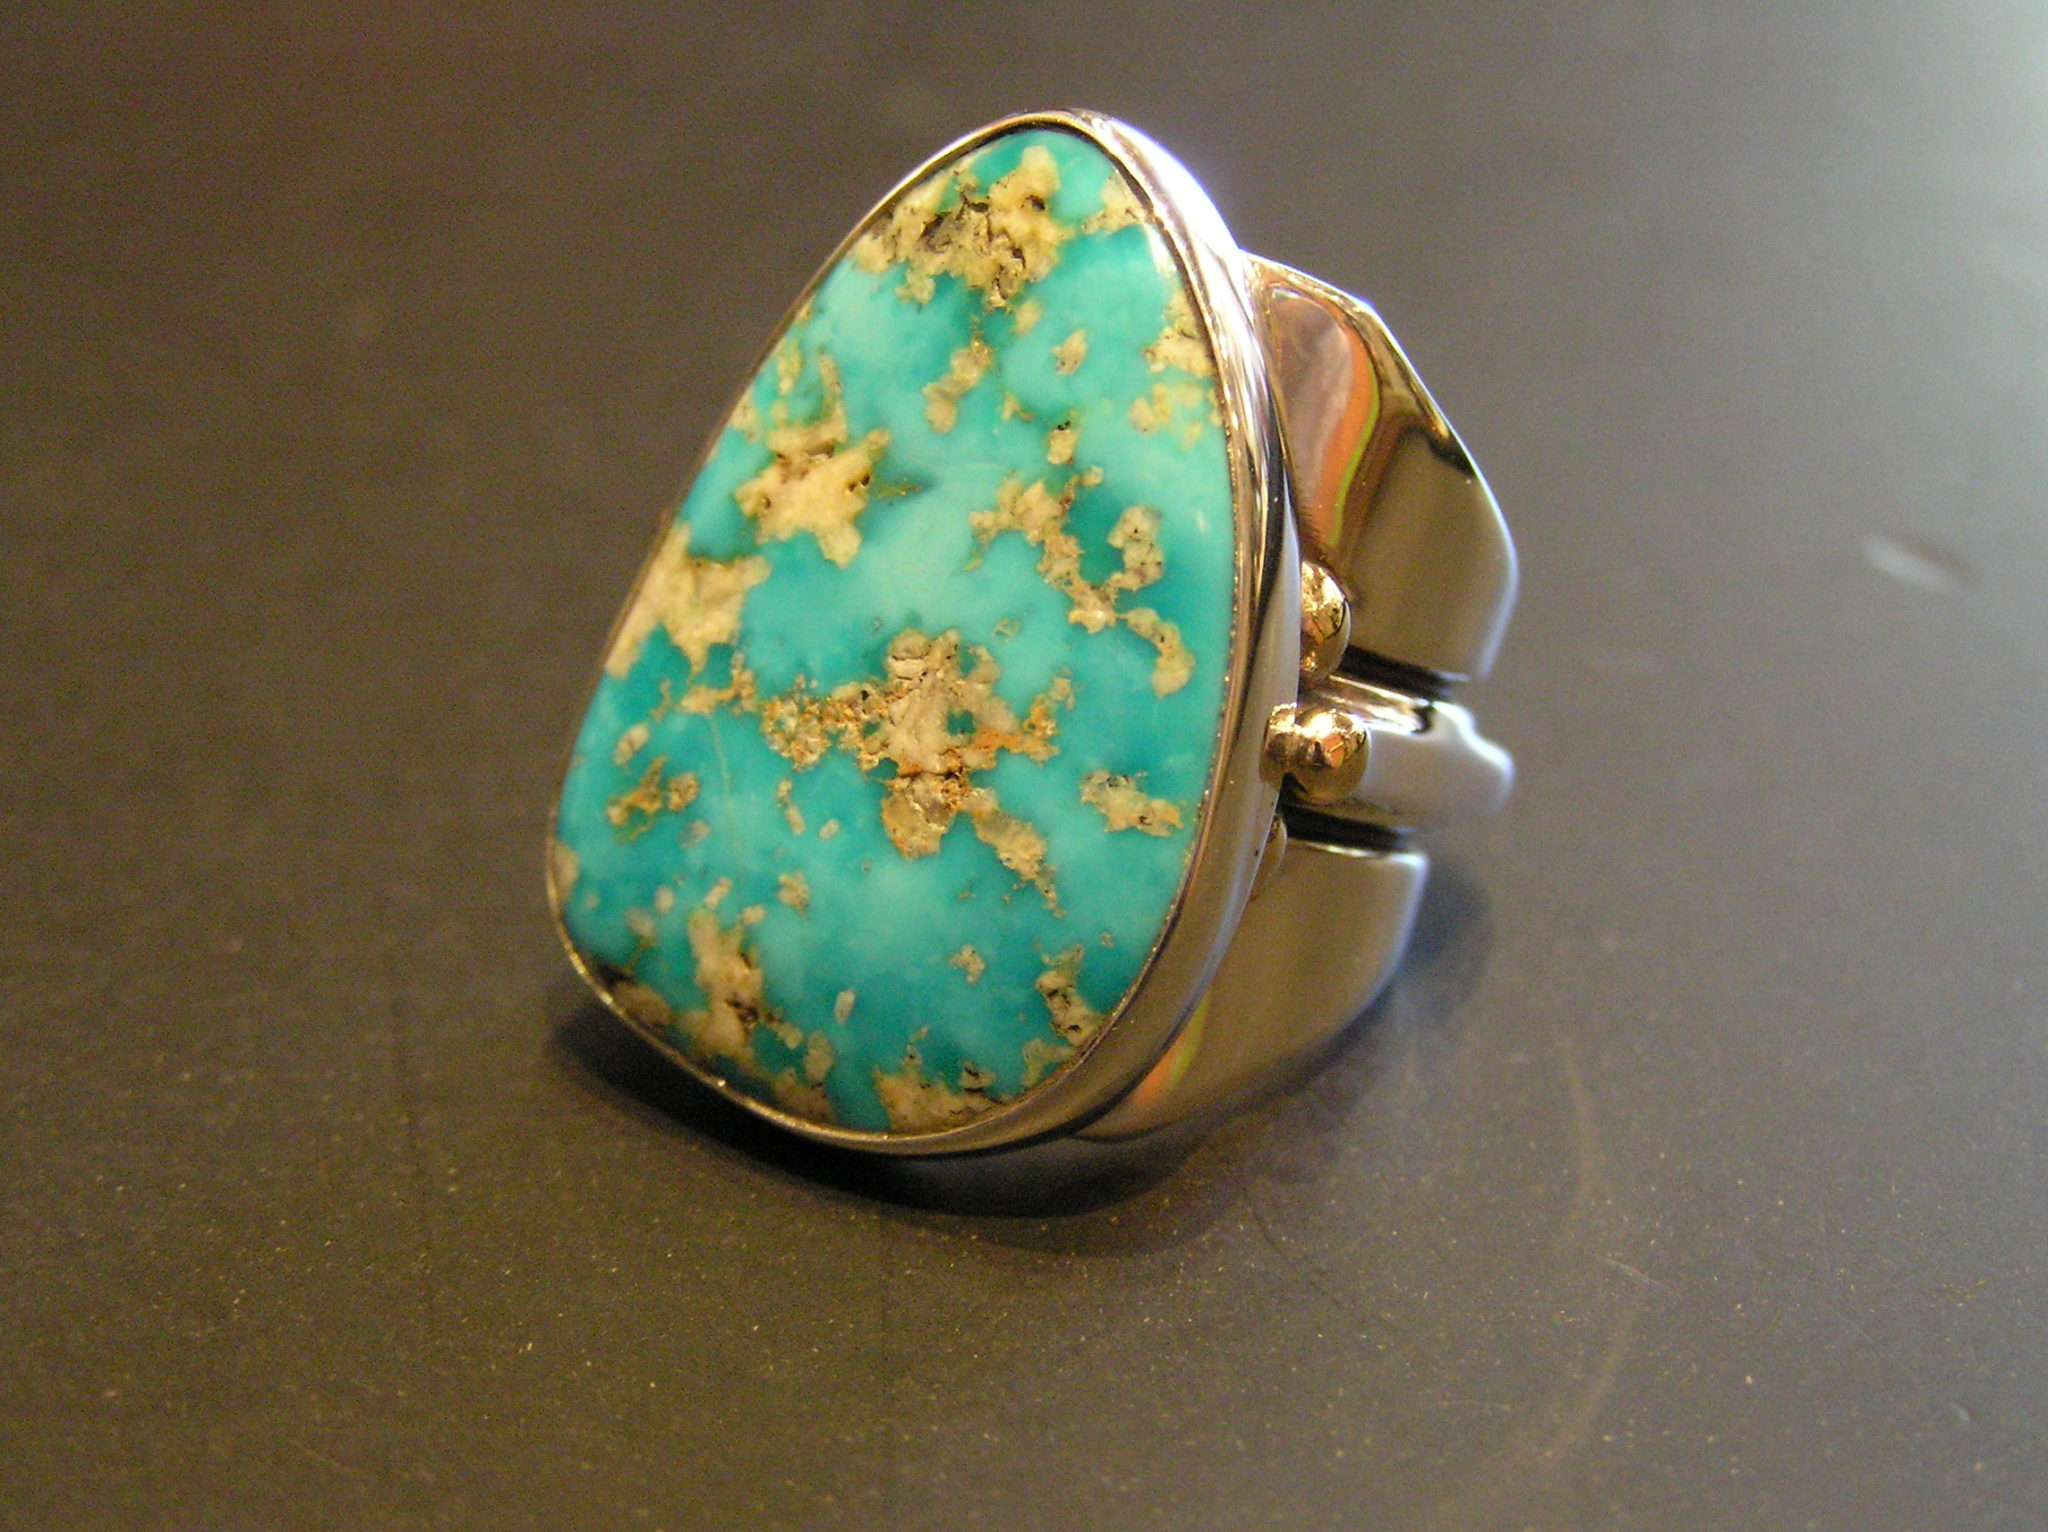 Stone Mountain Turquoise cabochon in sterling ring